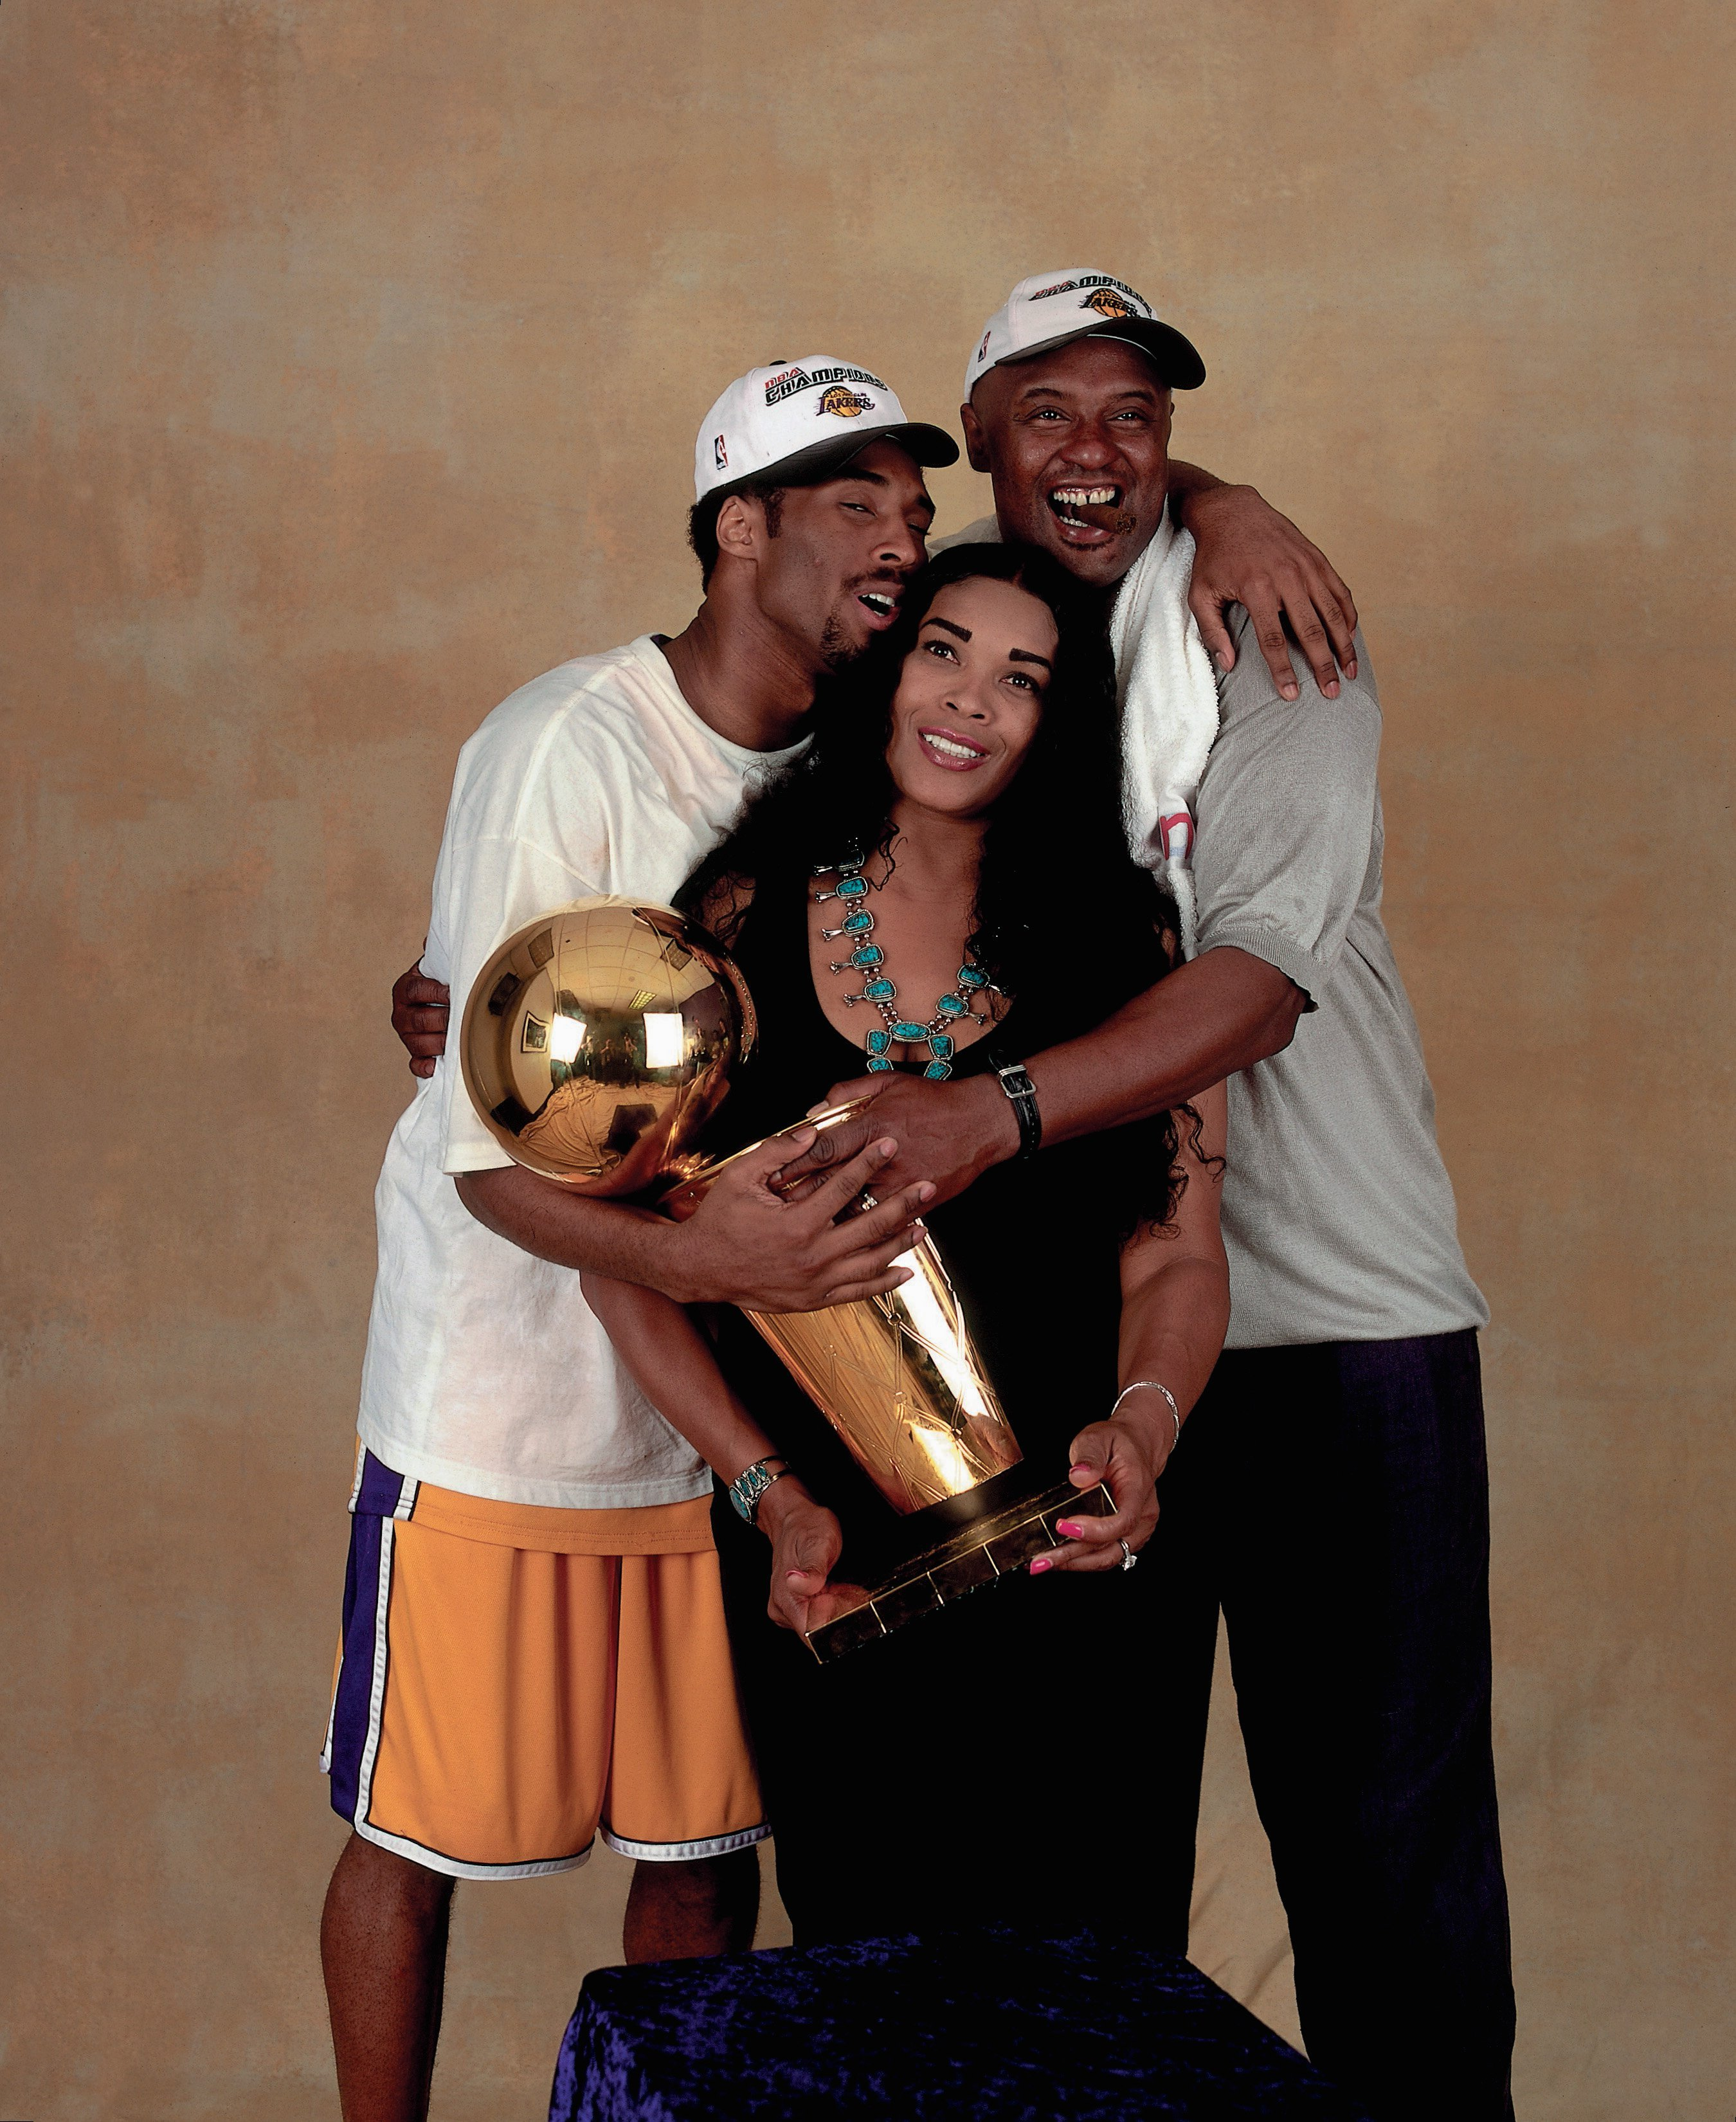 Kobe Bryant #8 of the Los Angeles Lakers poses for a photo with his parents after winning the NBA Championship on June 19, 2000 in California | Photo: Getty Images